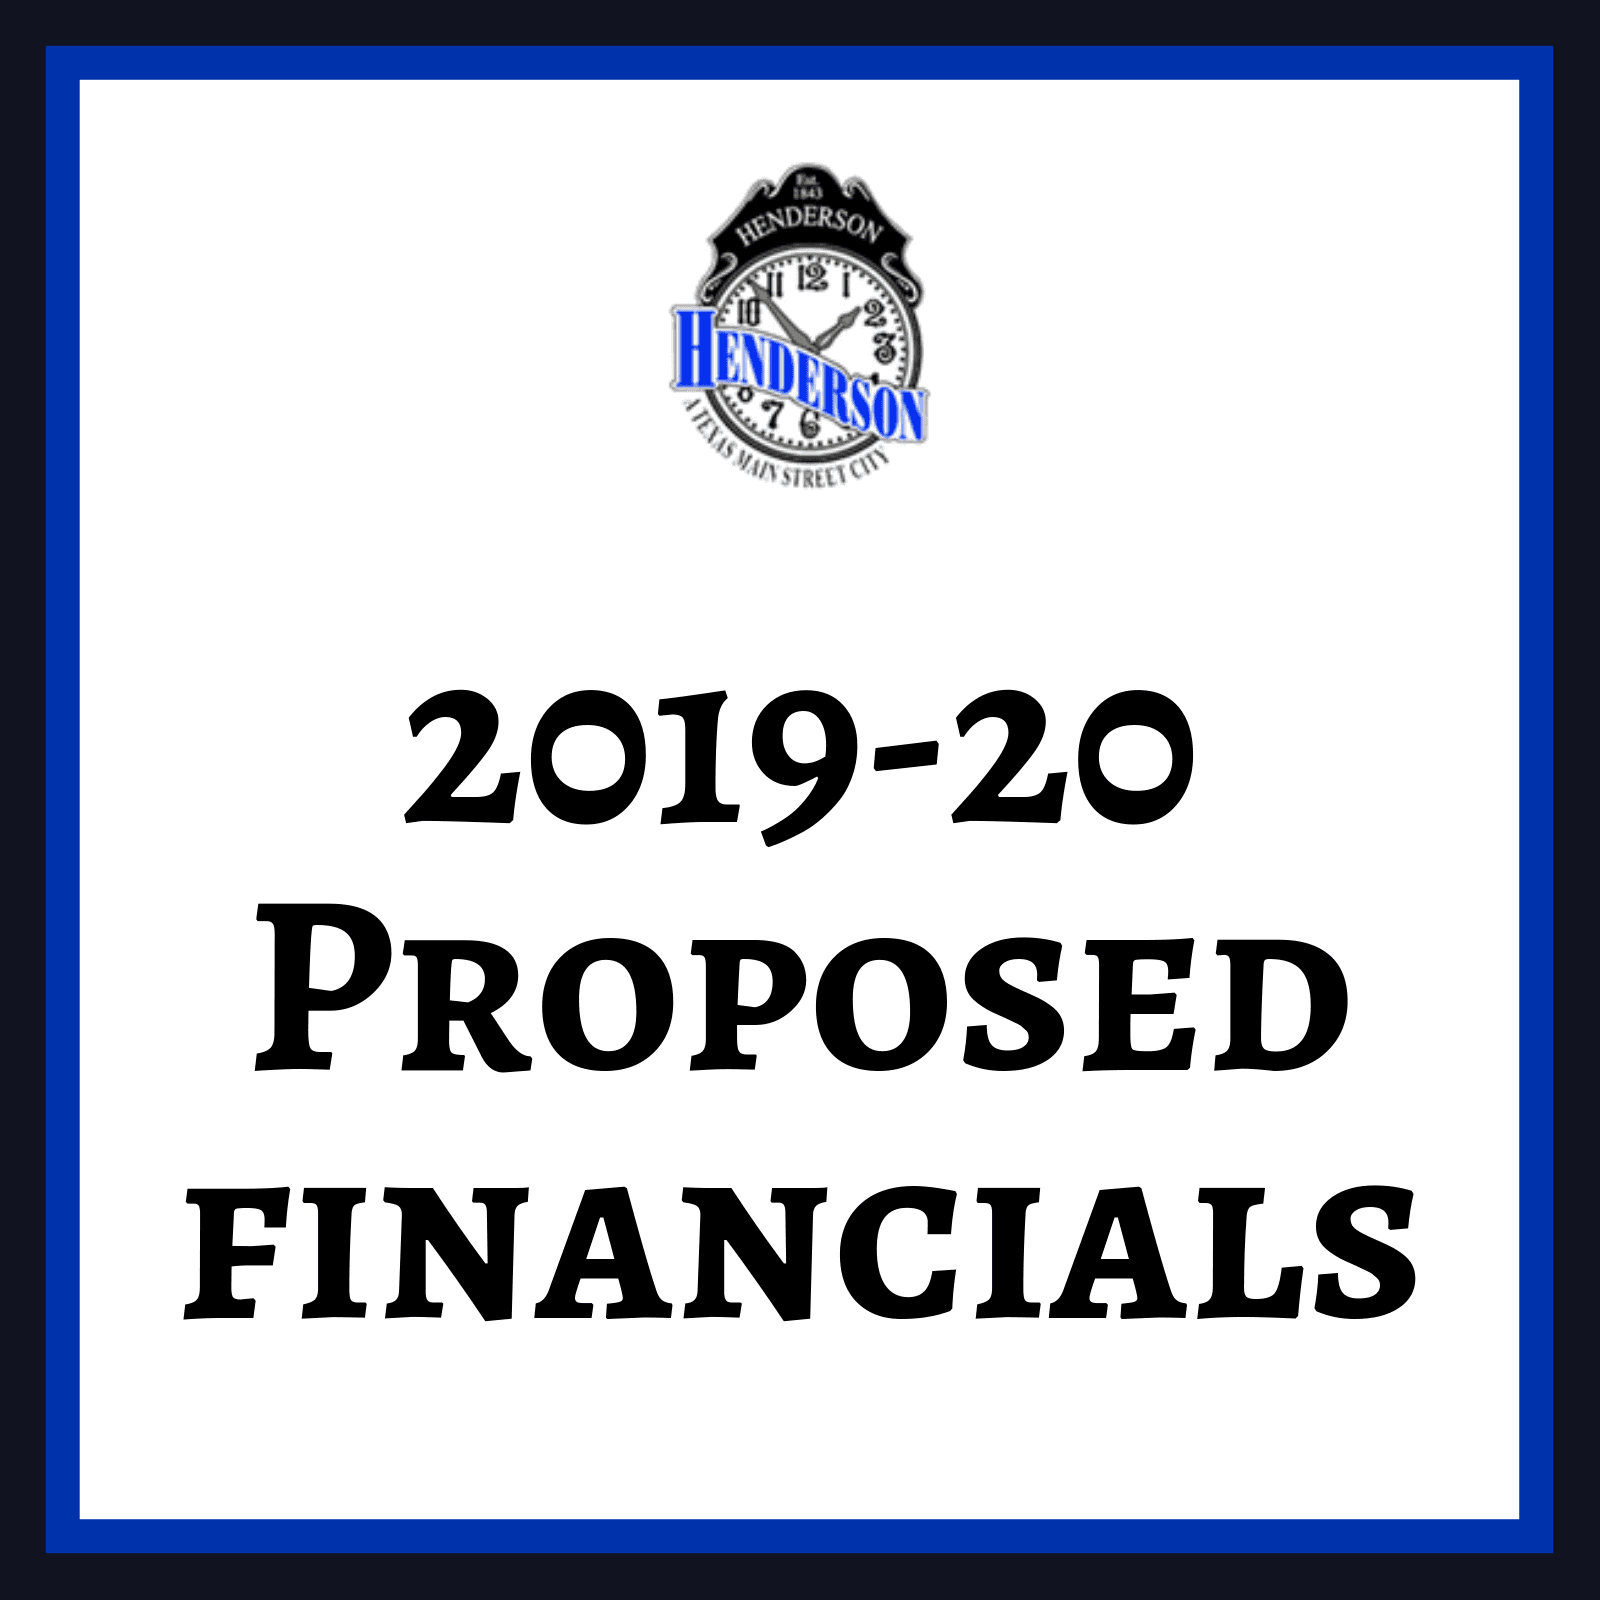 2019-20 Proposed financials